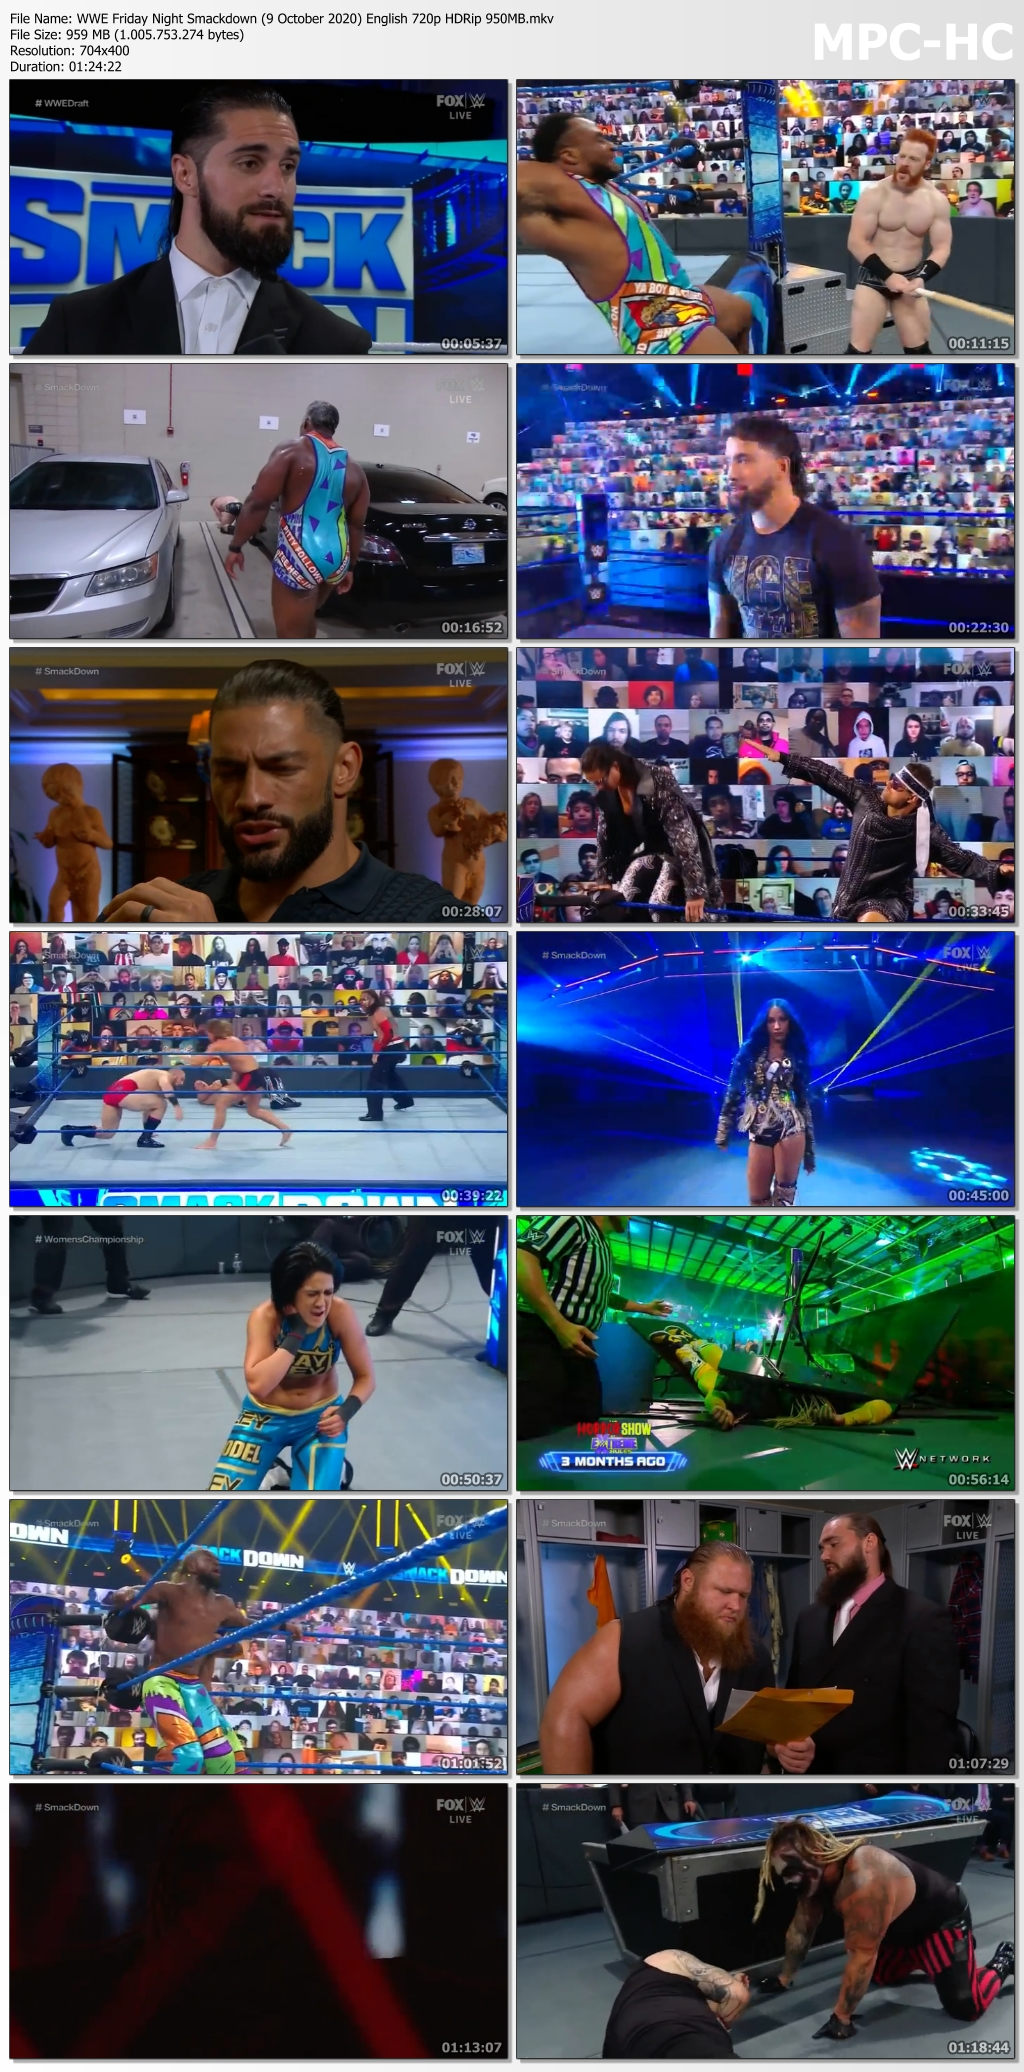 WWE-Friday-Night-Smackdown-9-October-2020-English-720p-HDRip-950-MB-mkv-thumbs